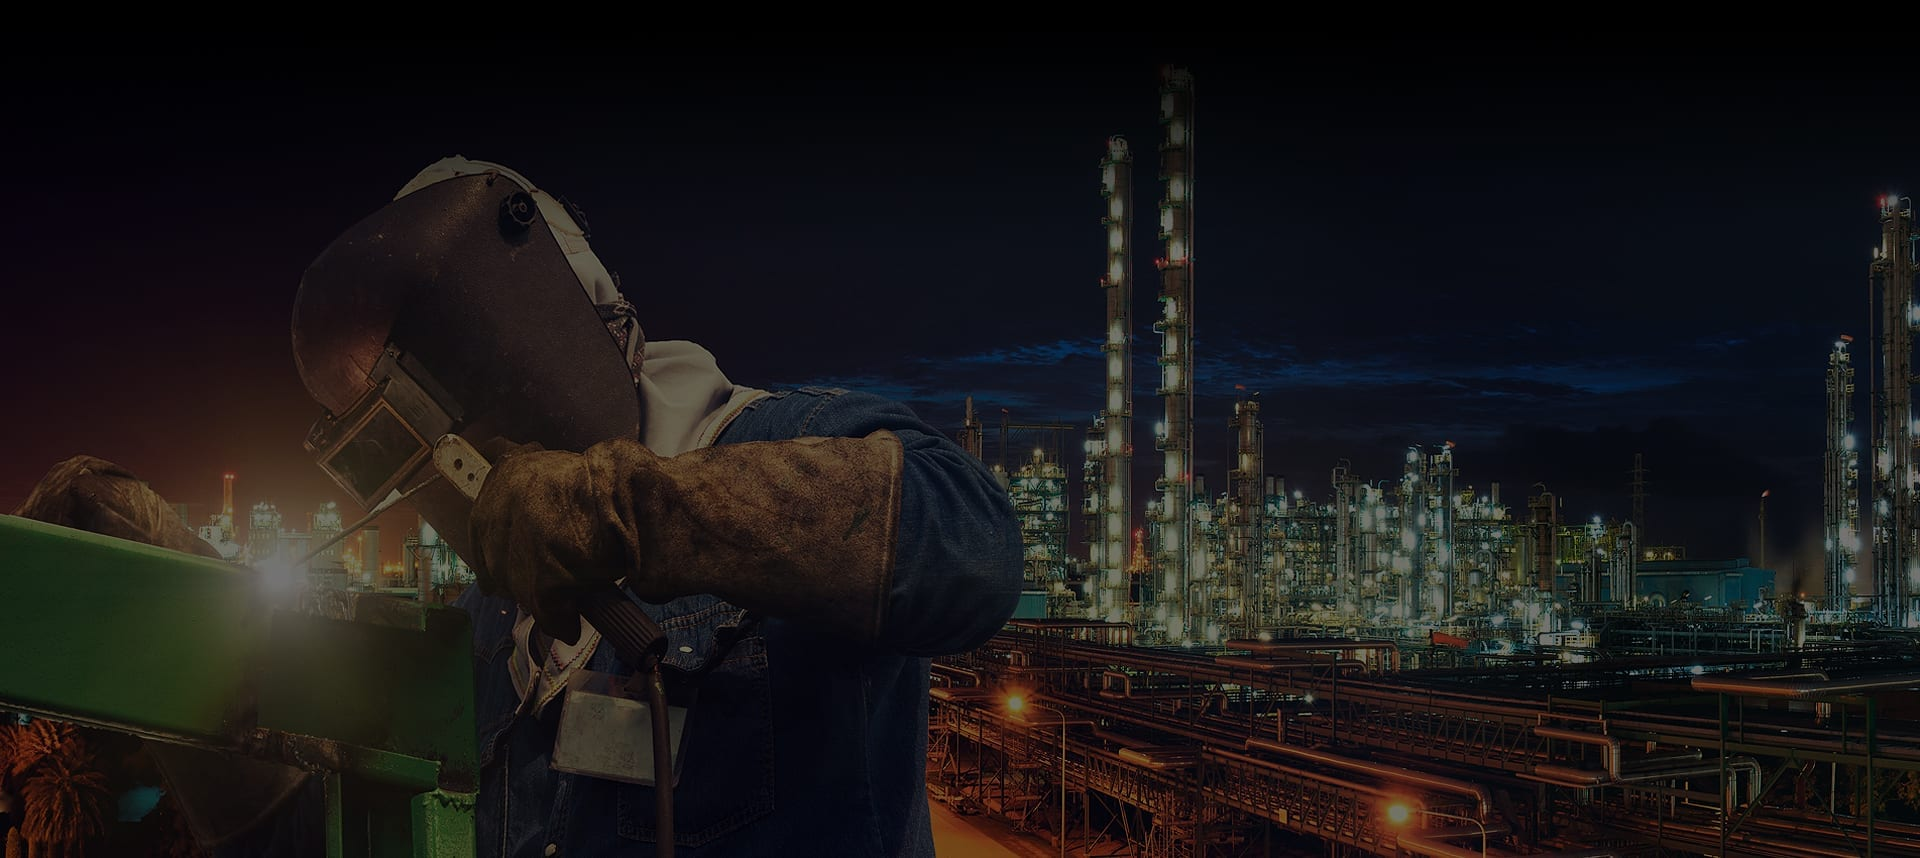 Pipework Welder with Industrial Plant in the Background